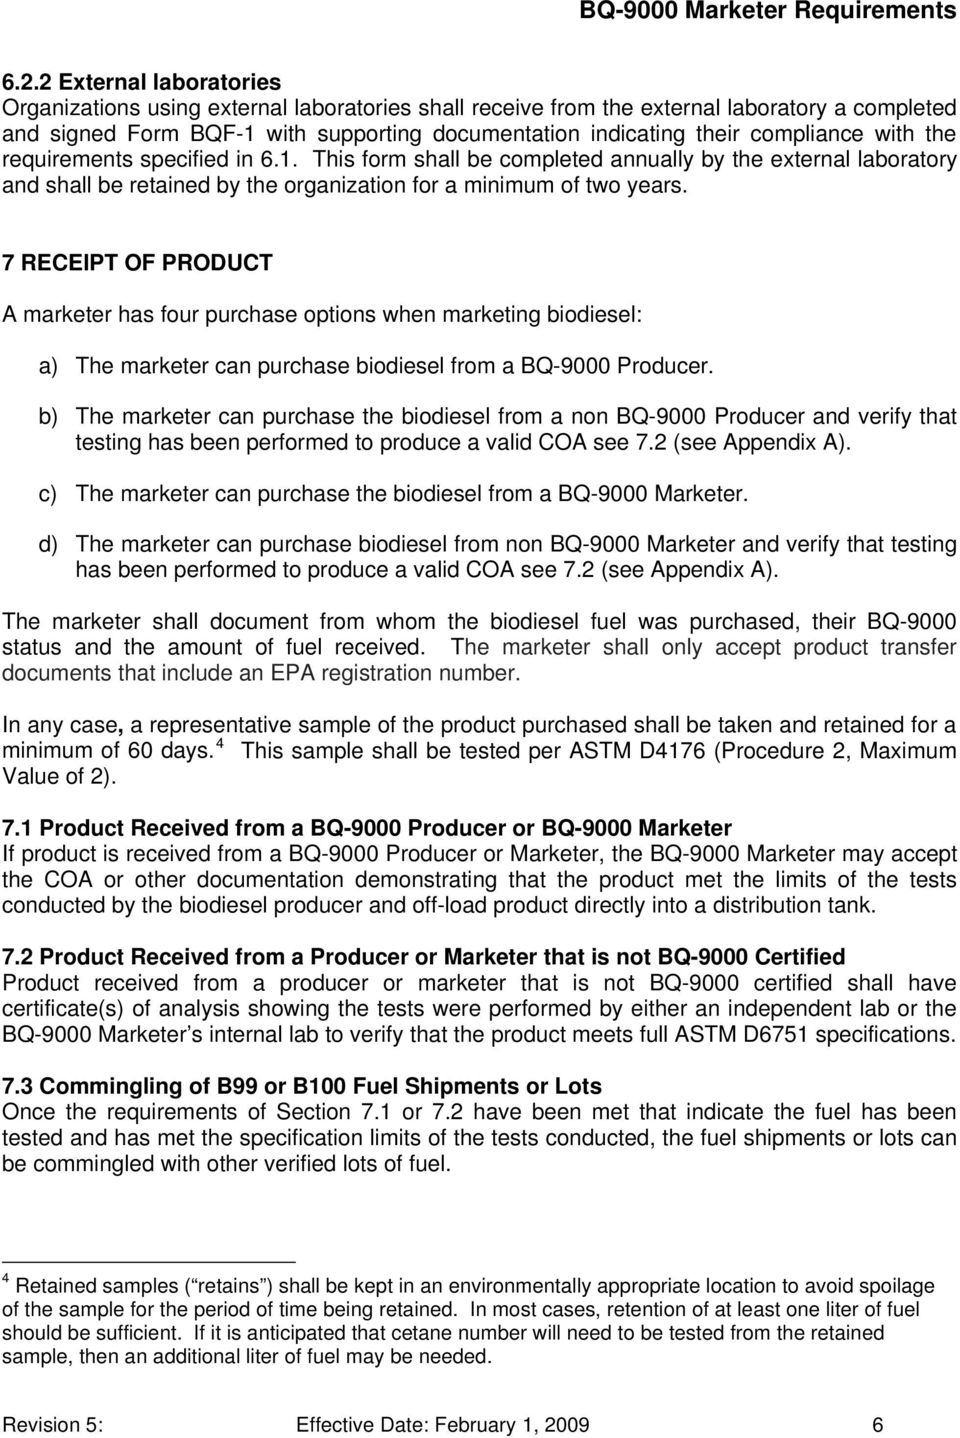 7 RECEIPT OF PRODUCT A marketer has four purchase options when marketing biodiesel: a) The marketer can purchase biodiesel from a BQ-9000 Producer.